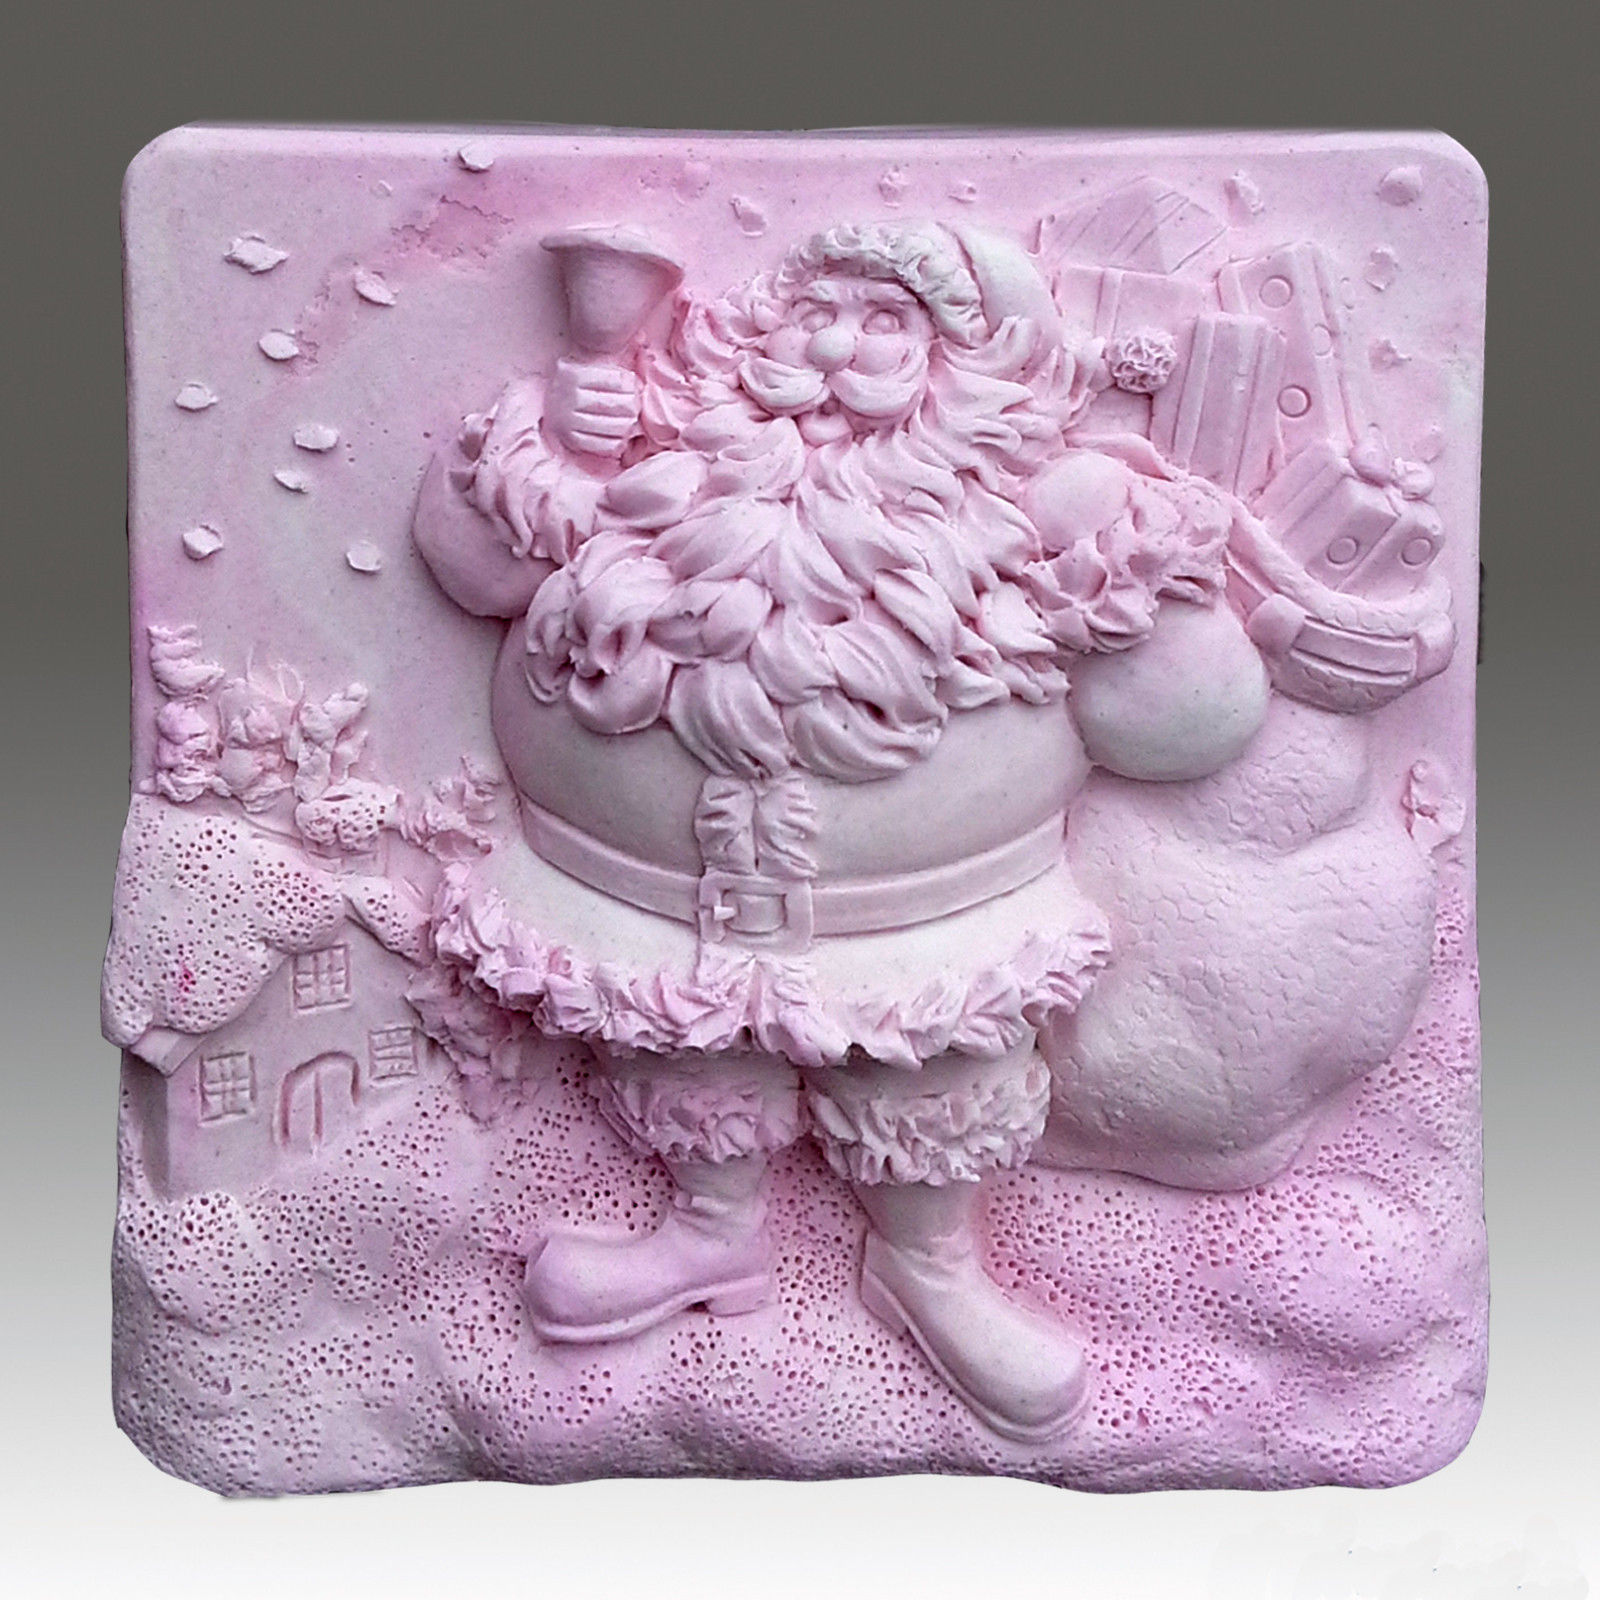 Jolly Jolly Santa  - Detail of high relief sculpture,silicone mold, soap mold